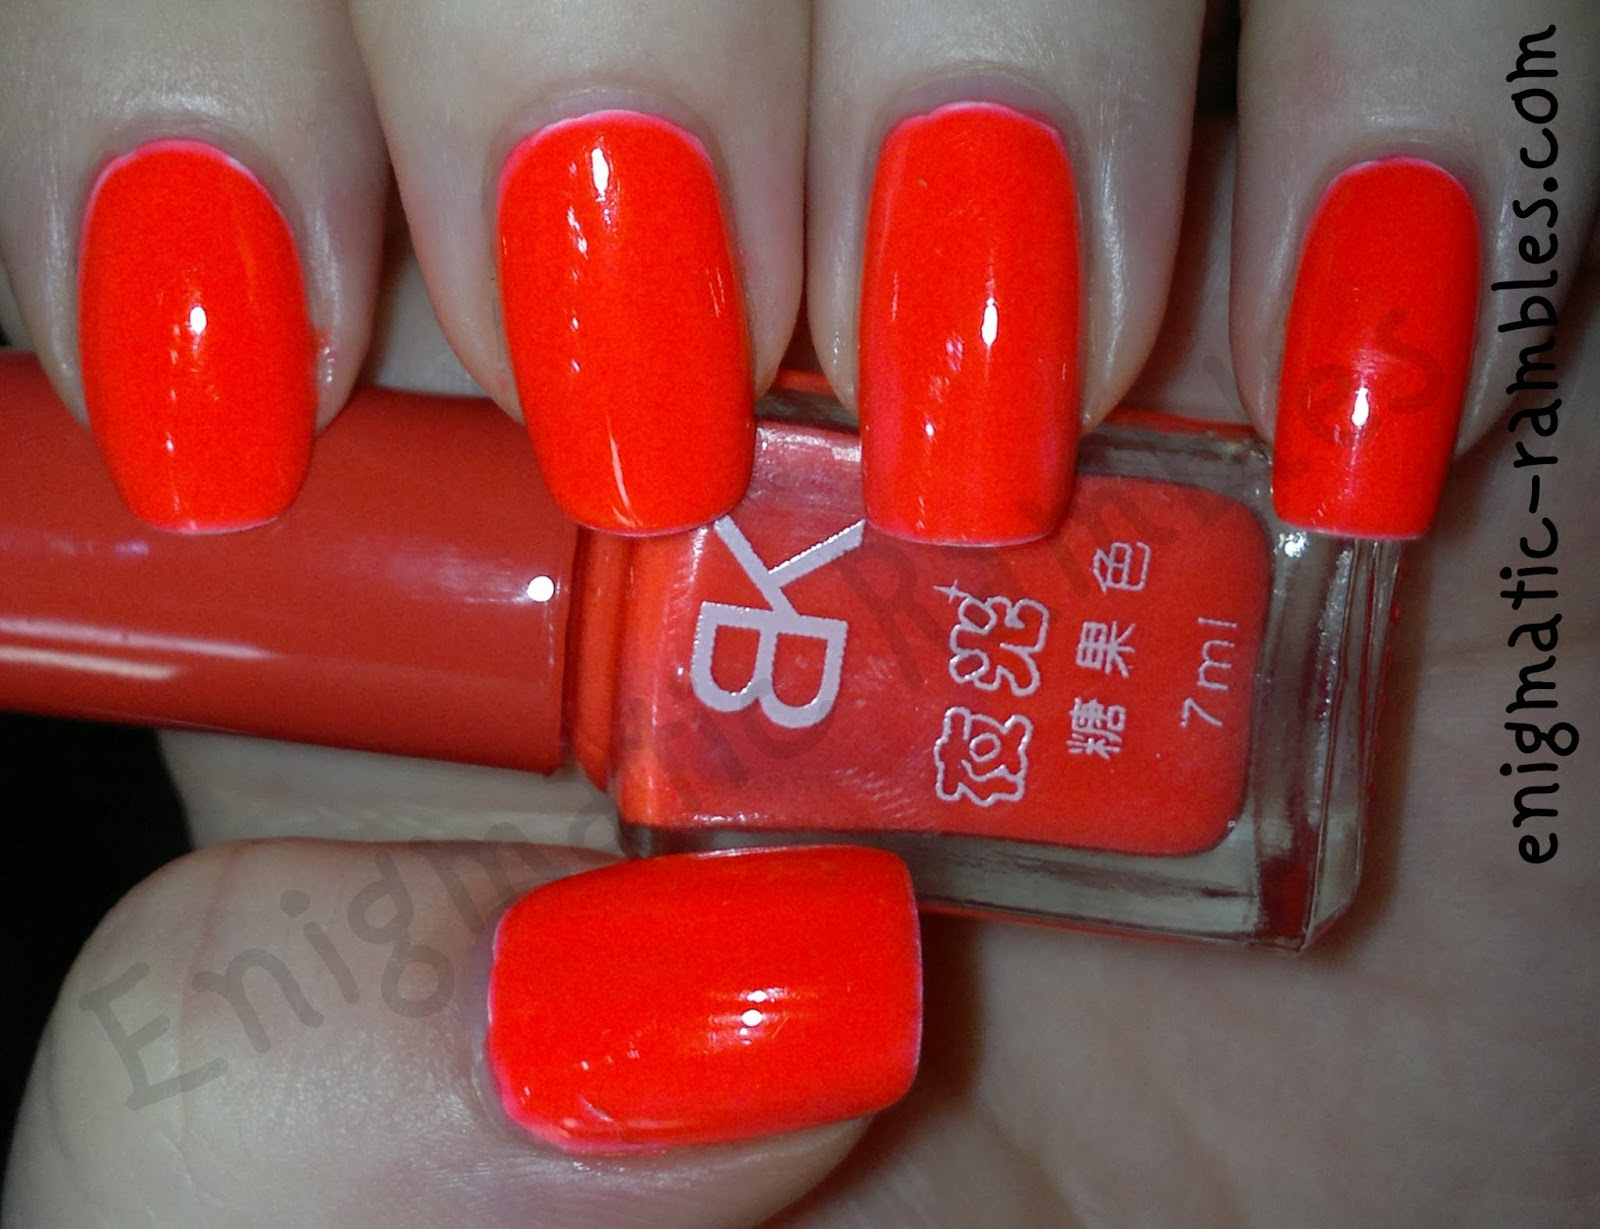 swatch-bk-20-#20-neon-orange-nail-polish